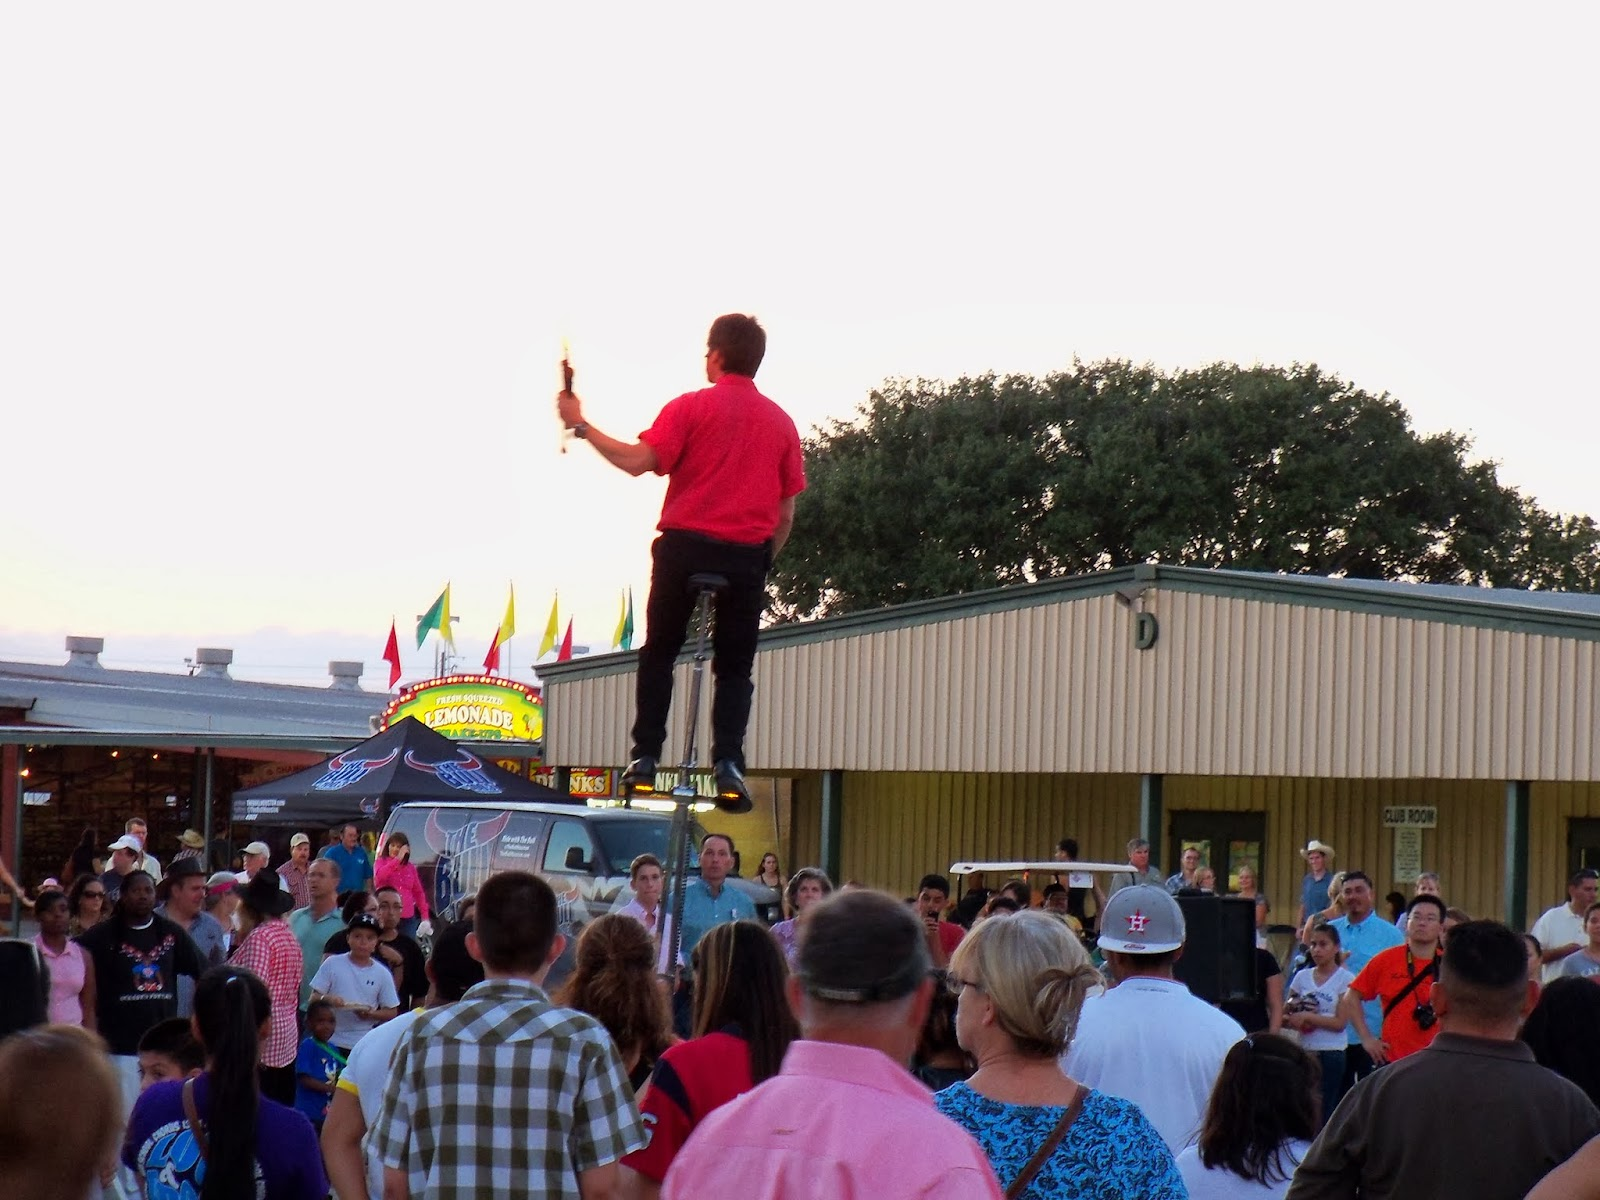 Fort Bend County Fair 2013 - 115_7916.JPG